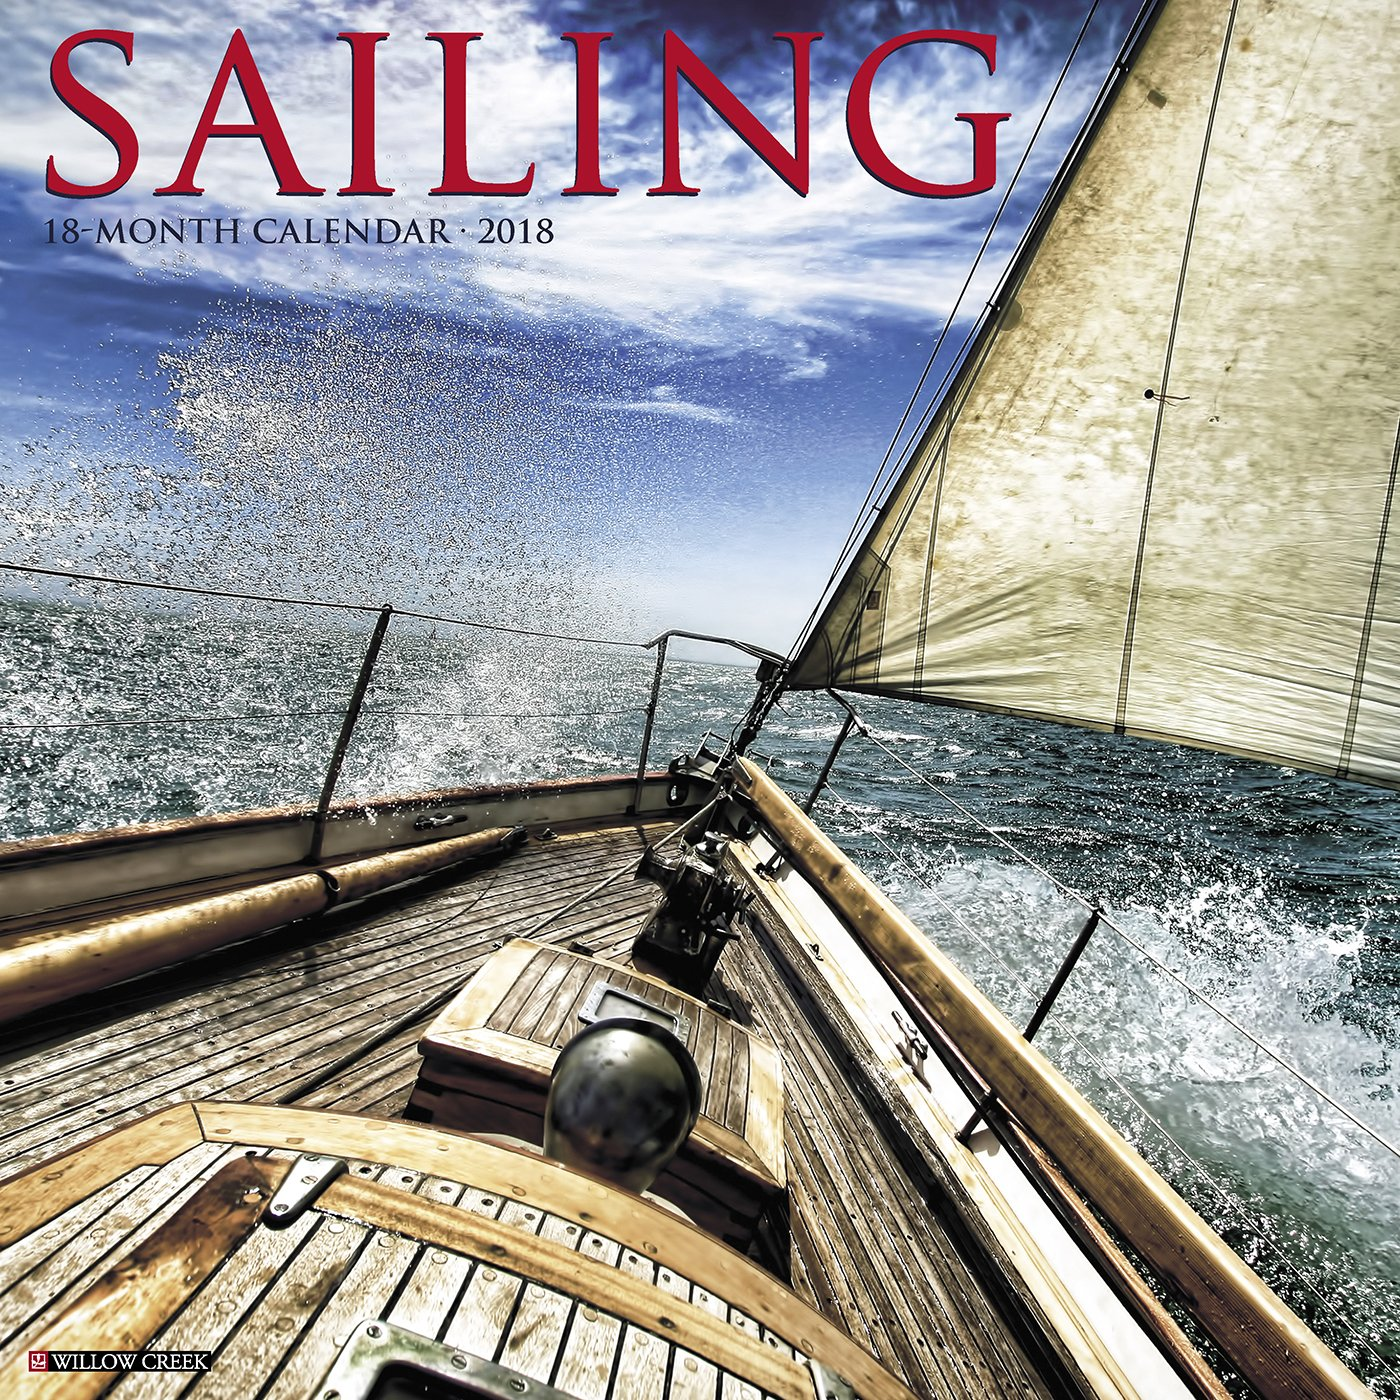 Sailing 2018 Calendar: Willow Creek Press: 4011312084356: Amazon.com: Books